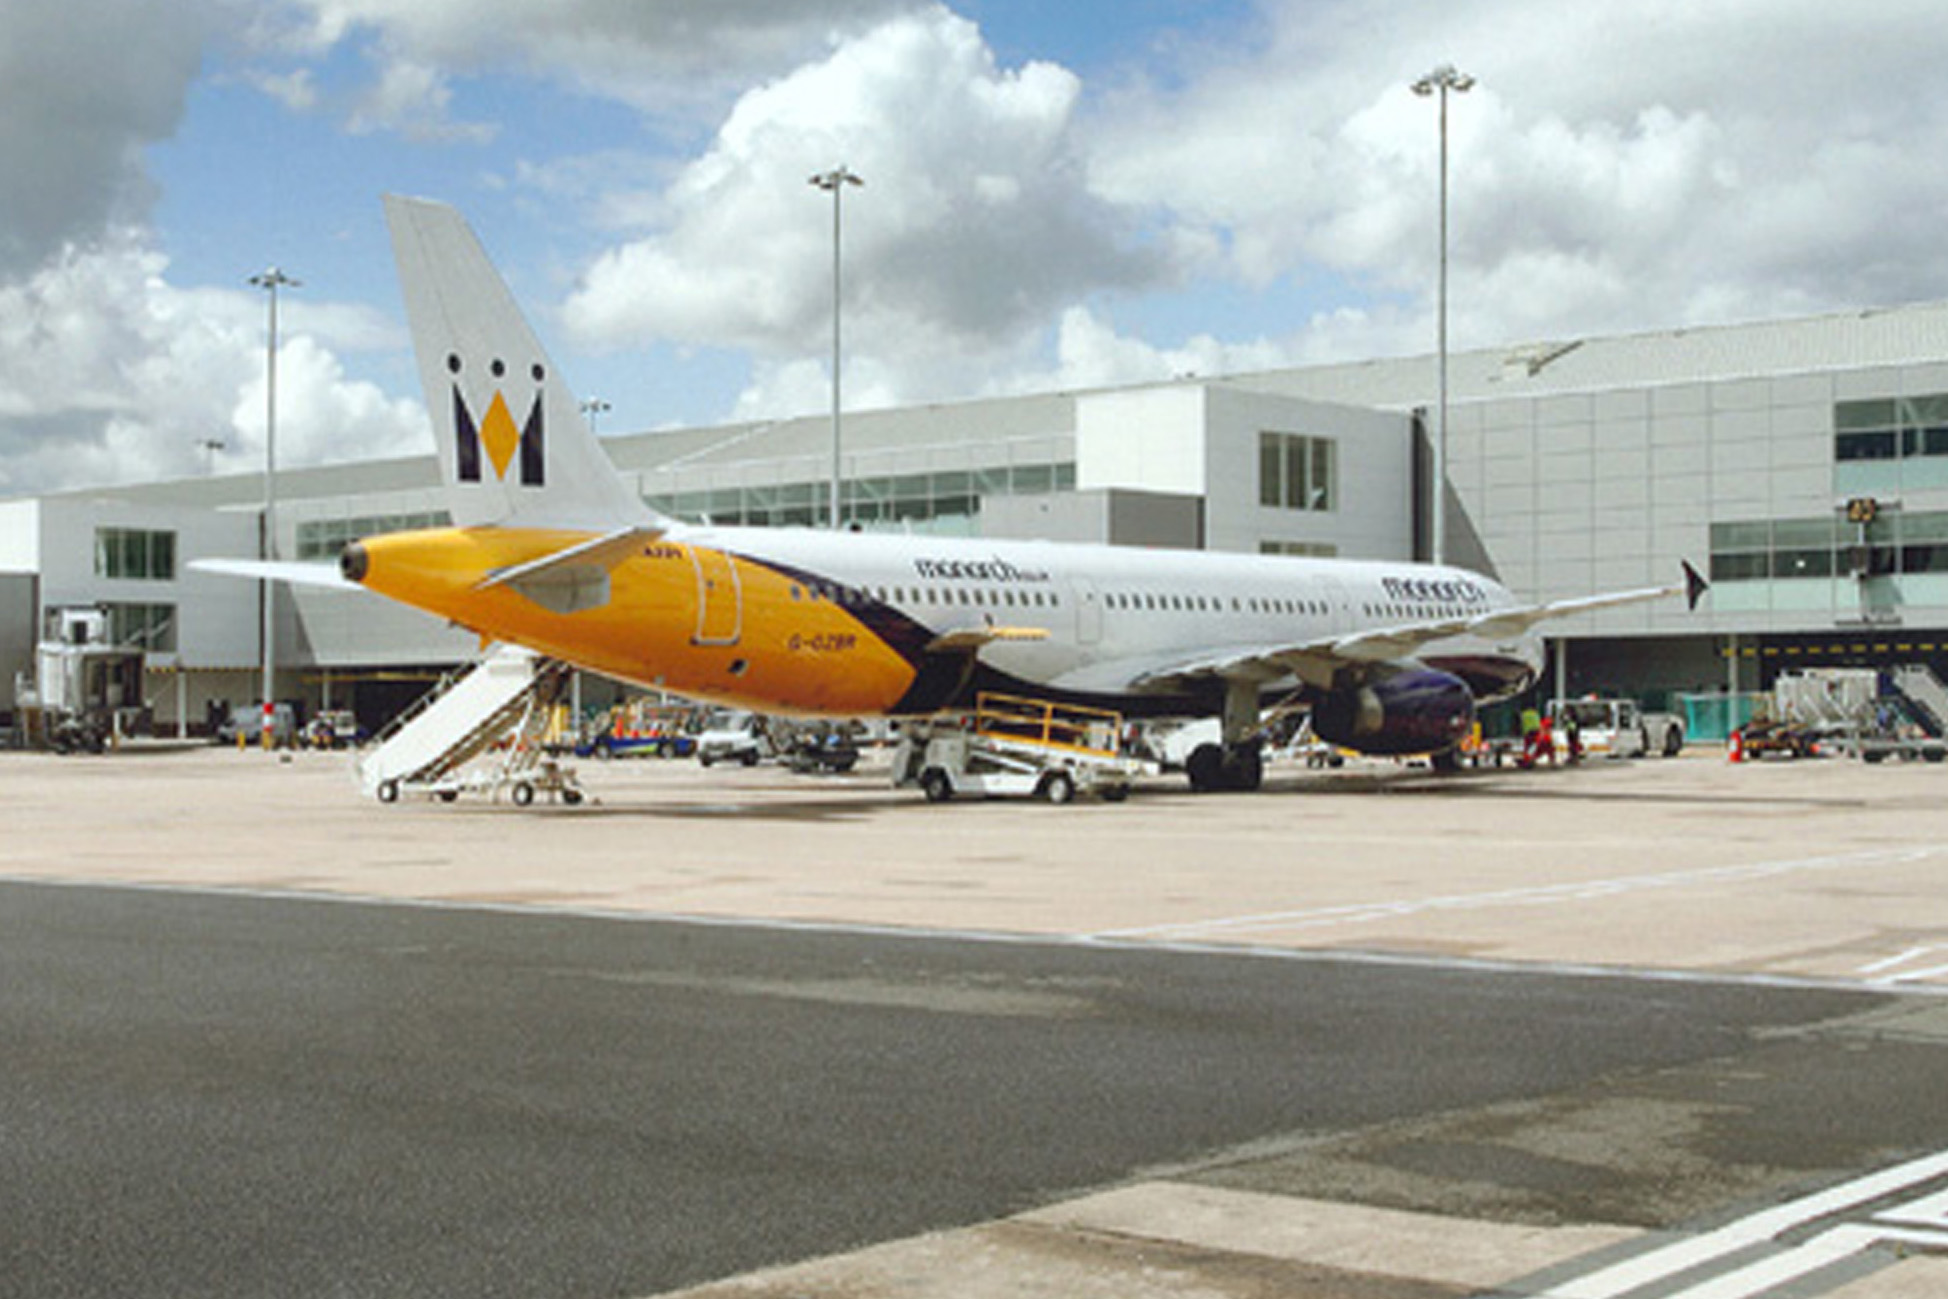 500m Birmingham Airport Expansion Paused New Civil Engineer